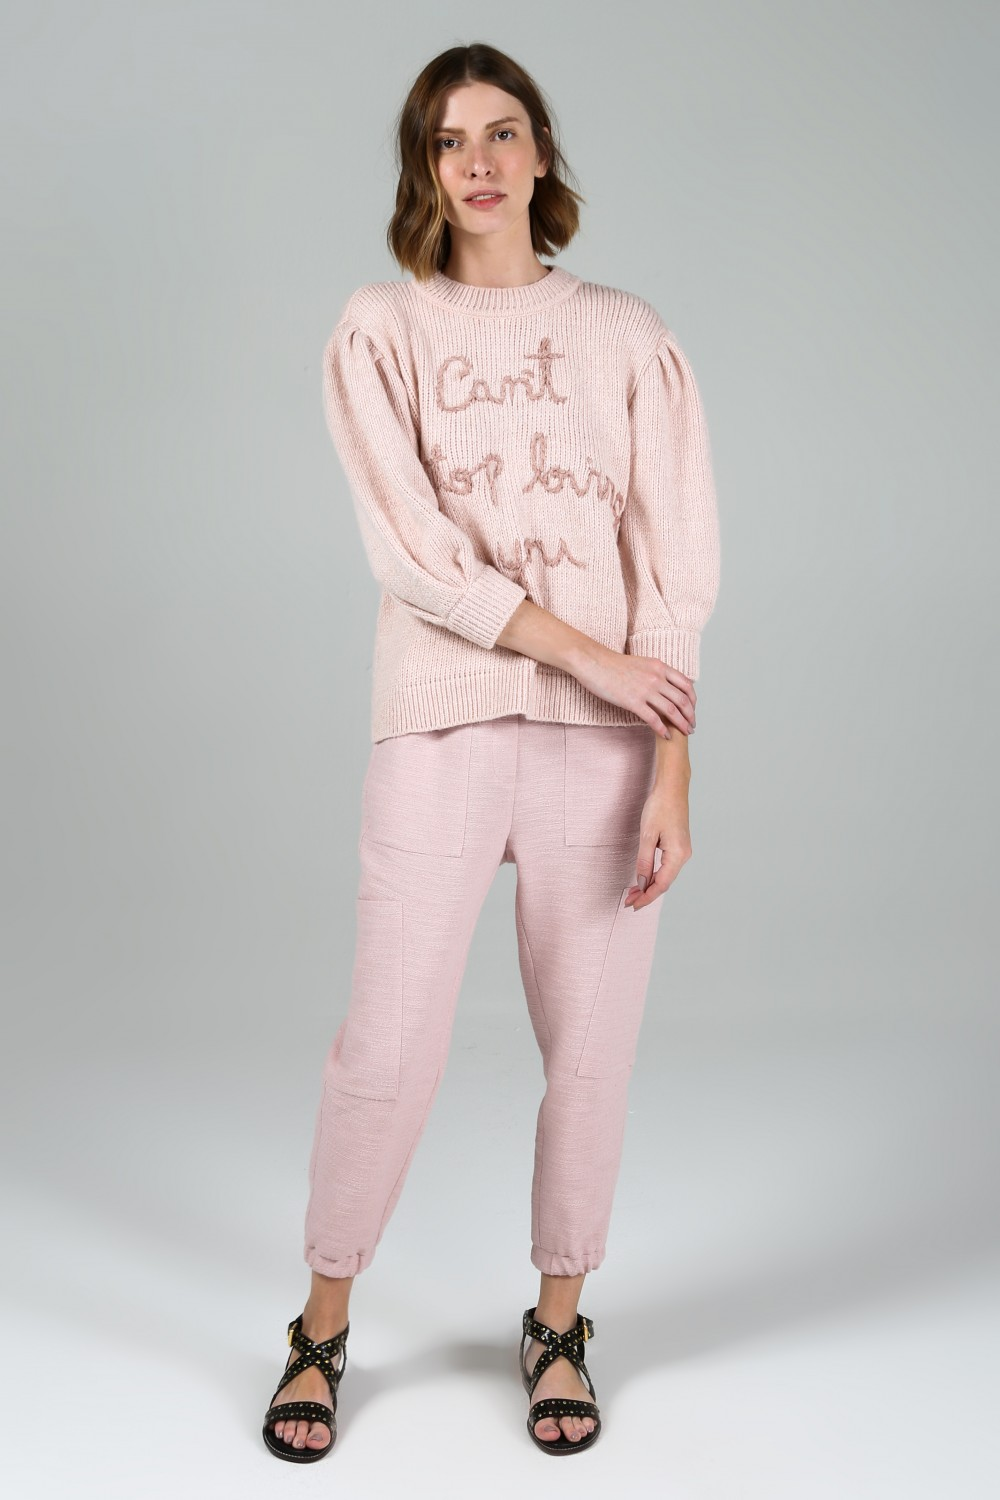 BLUSA TRICOT CAN T STOP I21